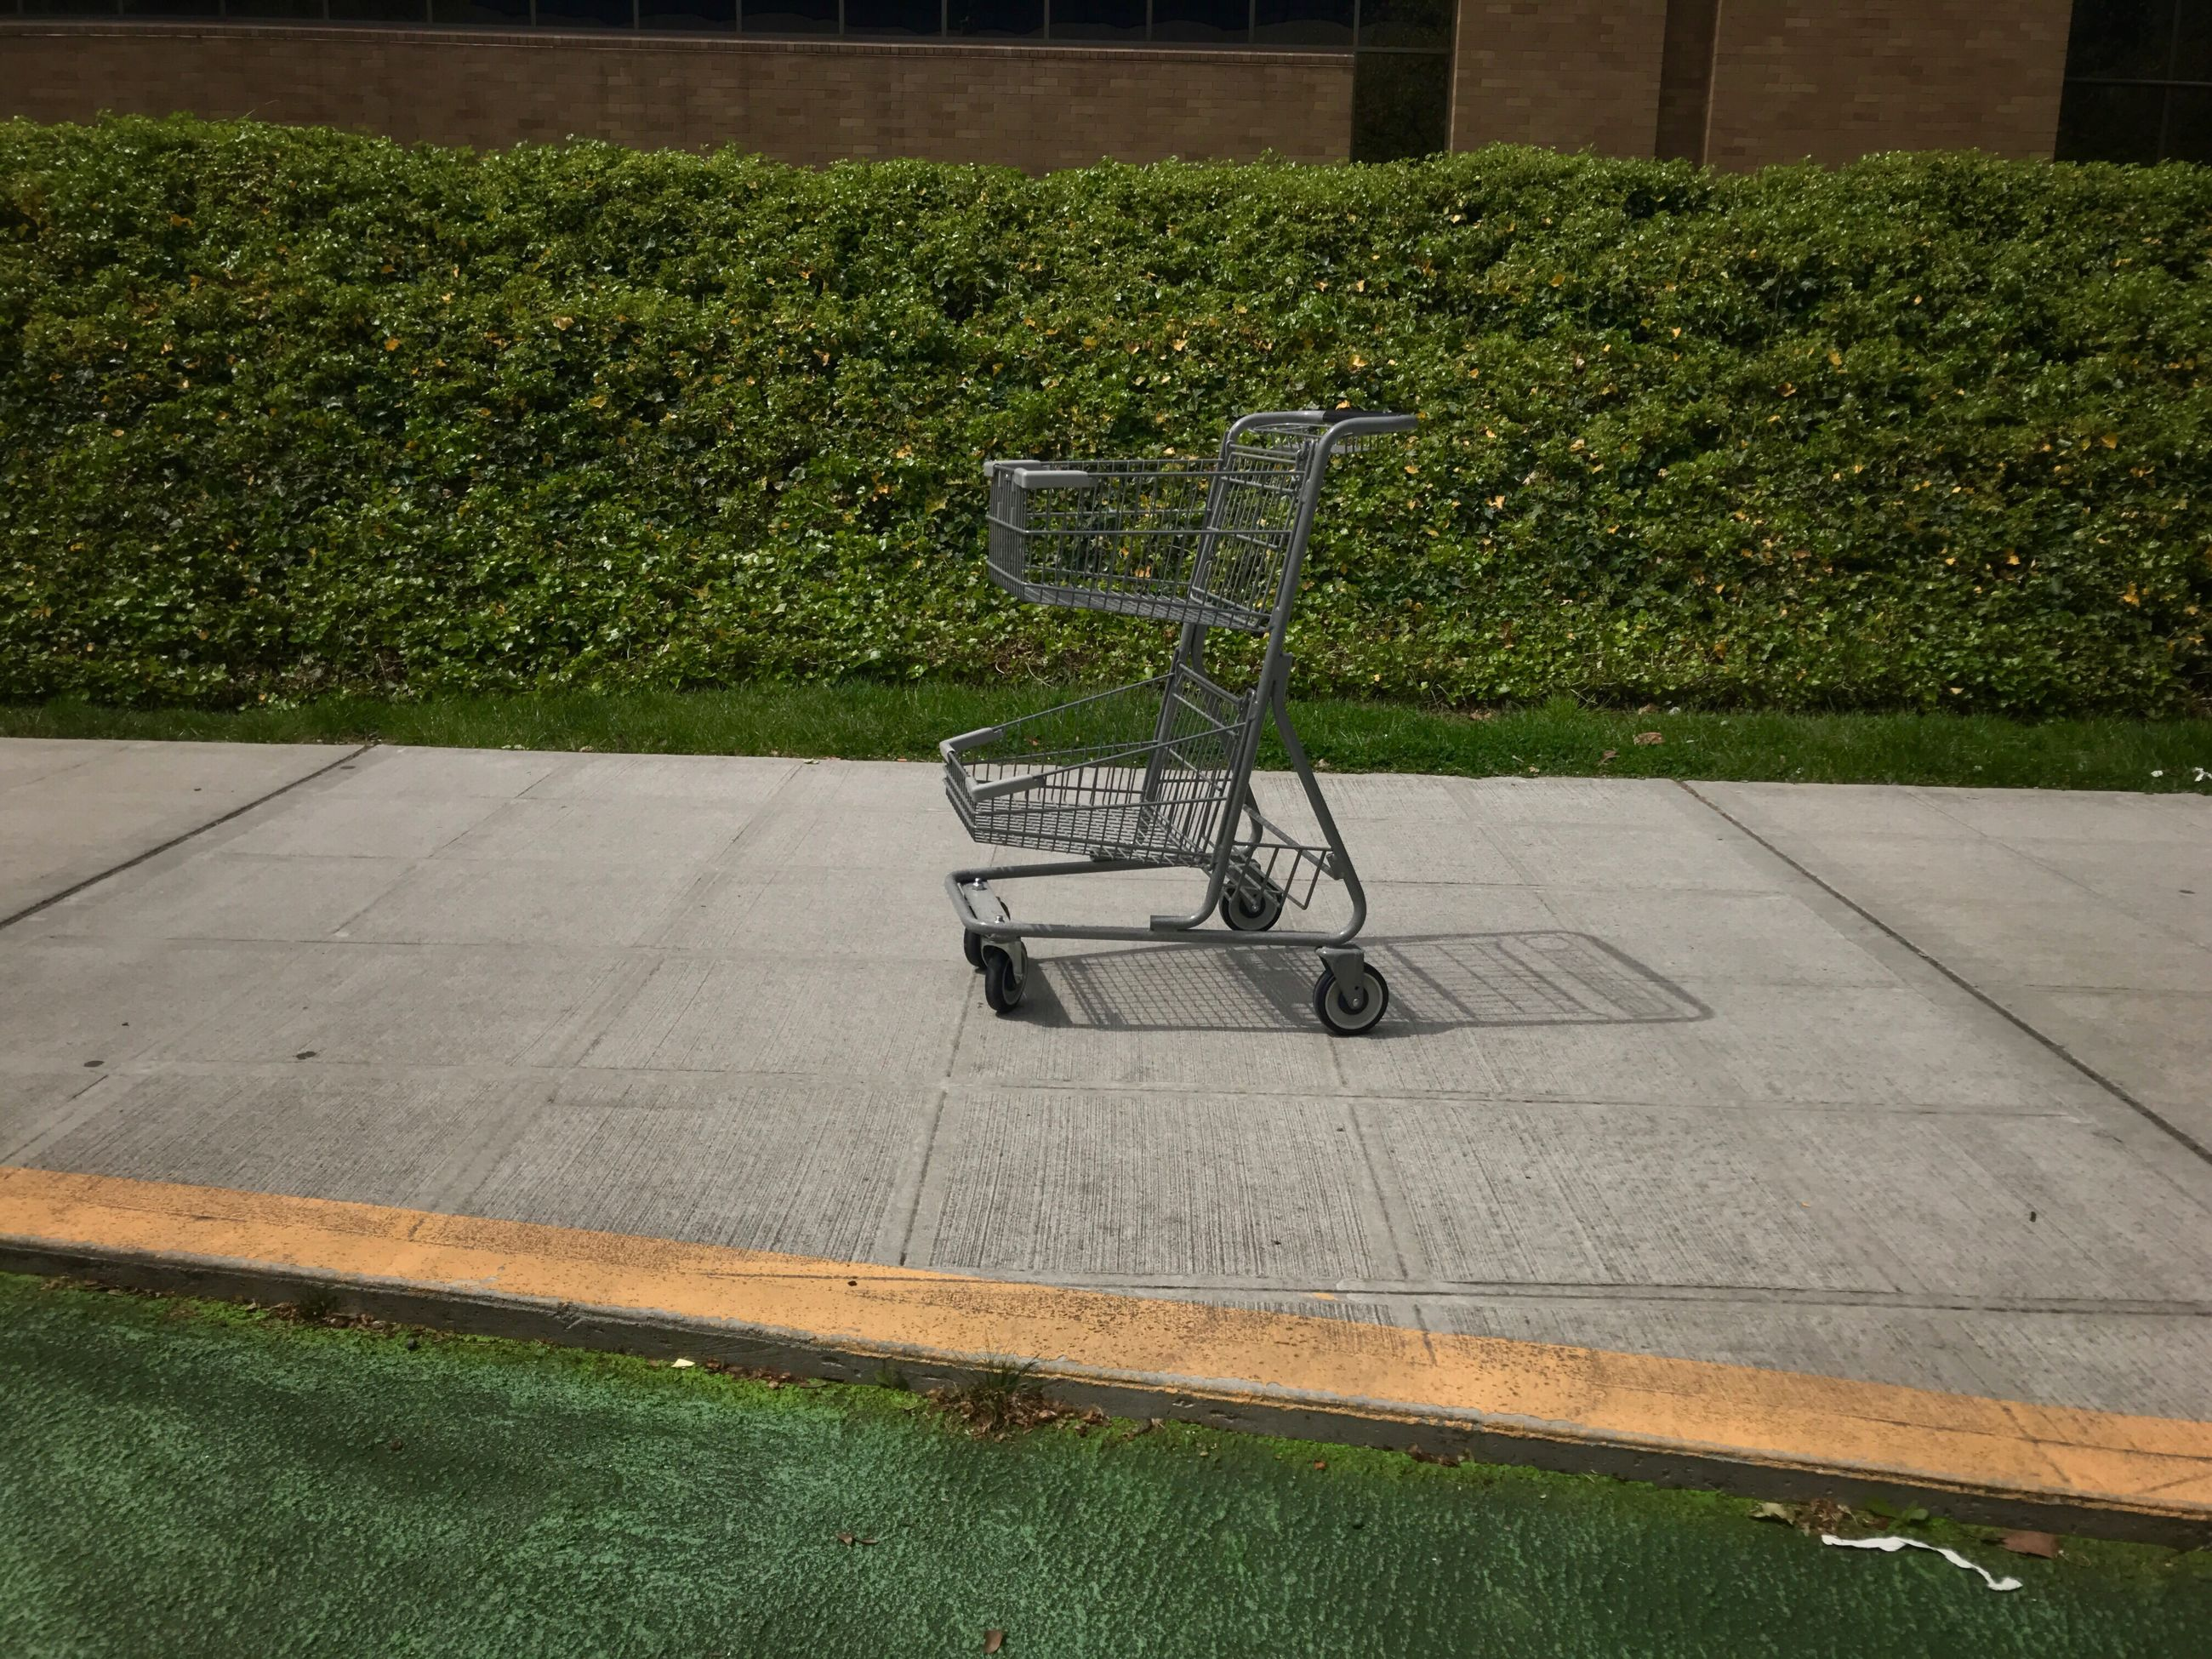 shopping cart, absence, shopping, plant, seat, empty, no people, grass, day, trolley, consumerism, green color, nature, outdoors, chair, sunlight, abandoned, metal, shadow, side view, hedge